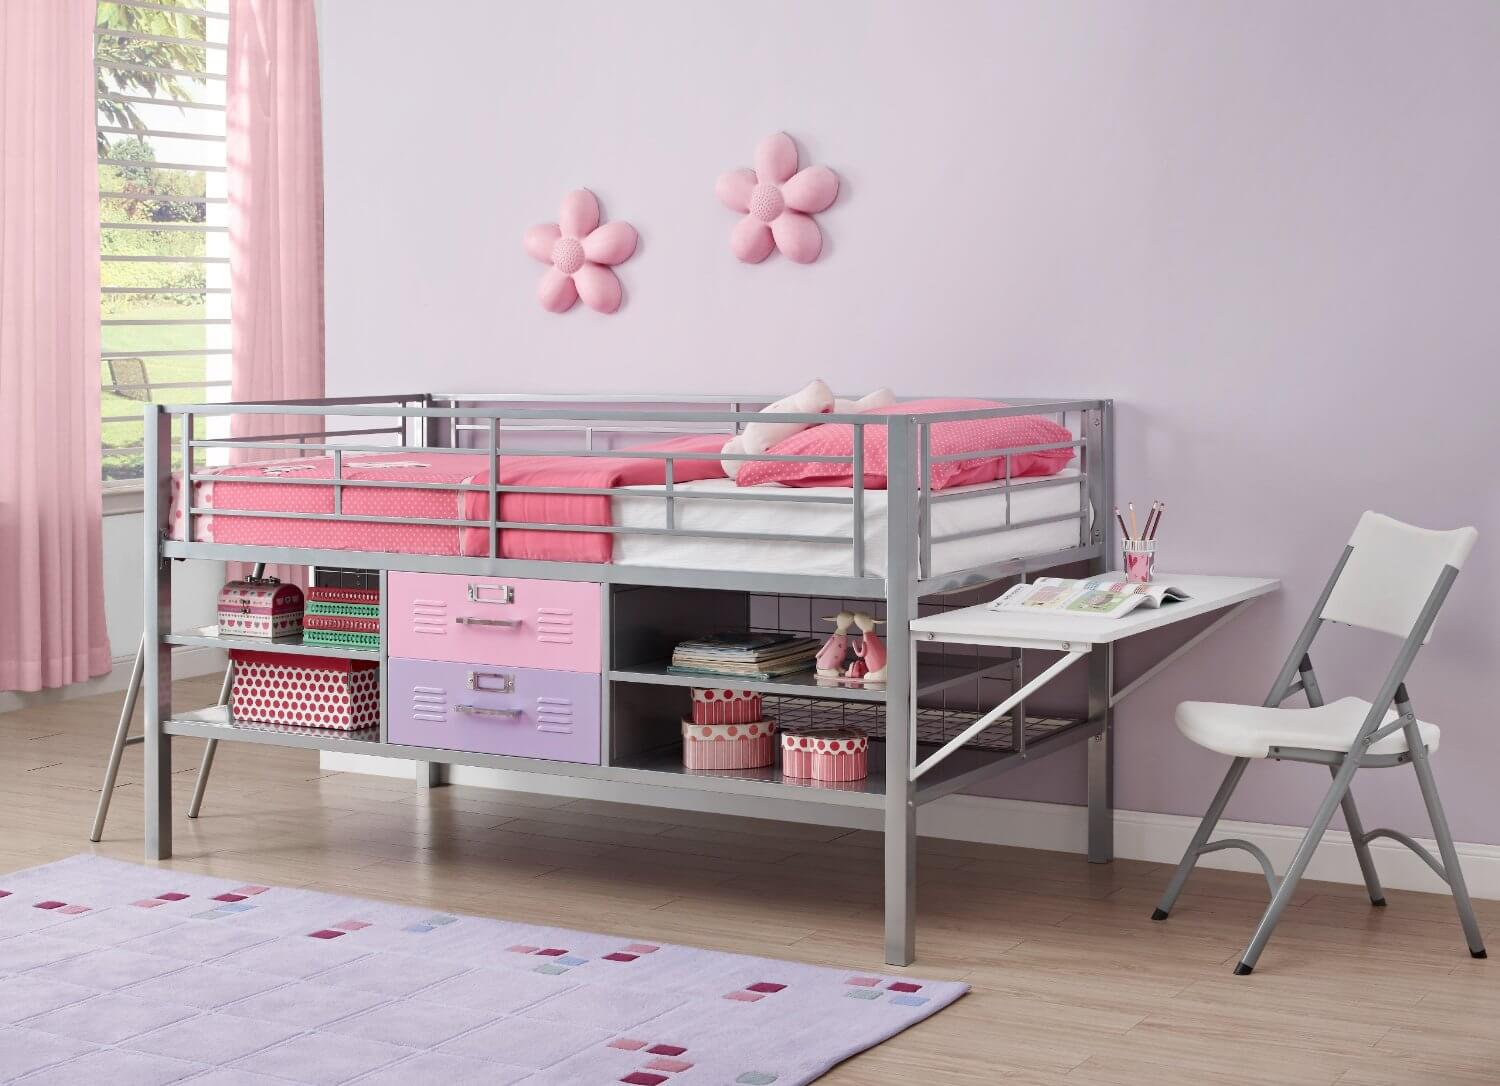 Picture of: Loft Beds For Kids With Desk For A Price You Can Afford Loft Bed Deals Loft Bed Reviews Loft Bed Deals Reviews